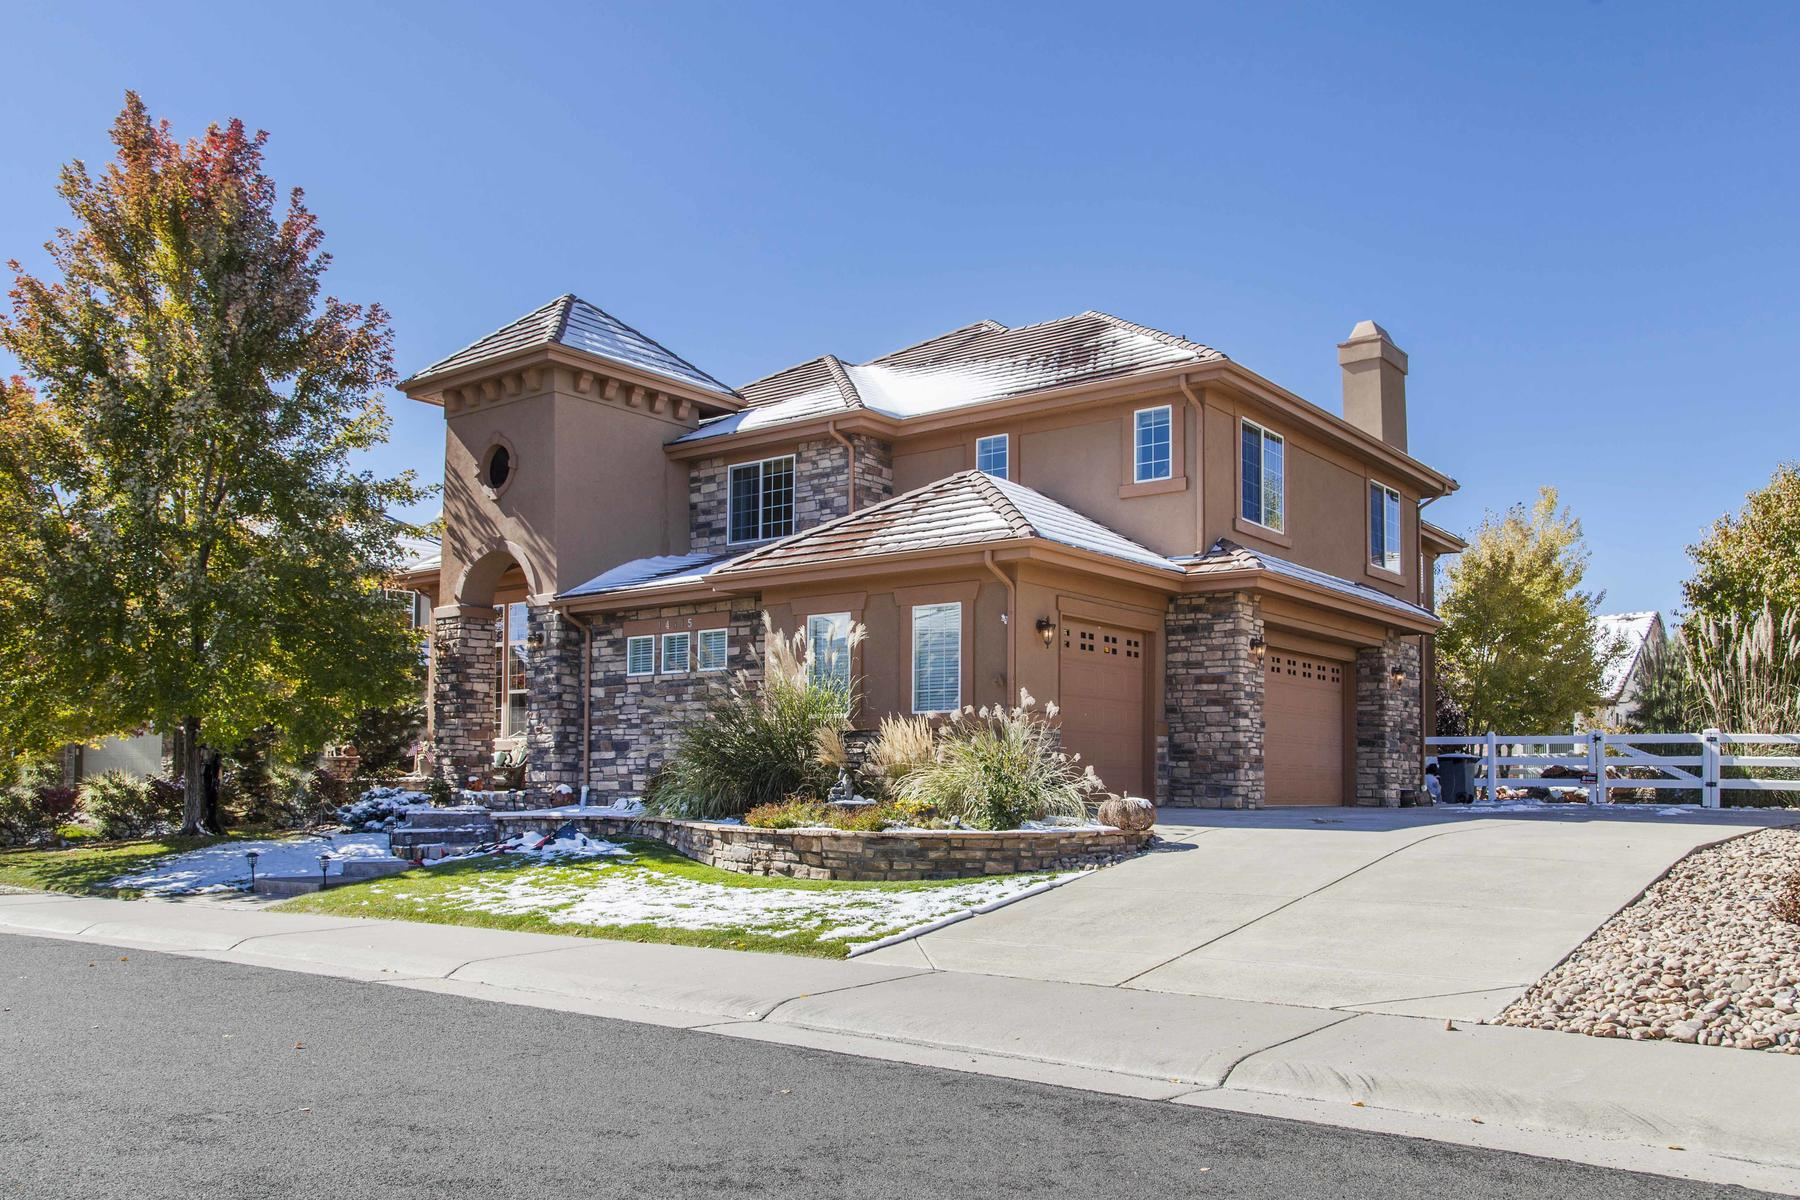 Single Family Home for Active at Gorgeous Turn-Key Two- Story Home In Huntington Trails 14315 Santa Fe St Westminster, Colorado 80023 United States